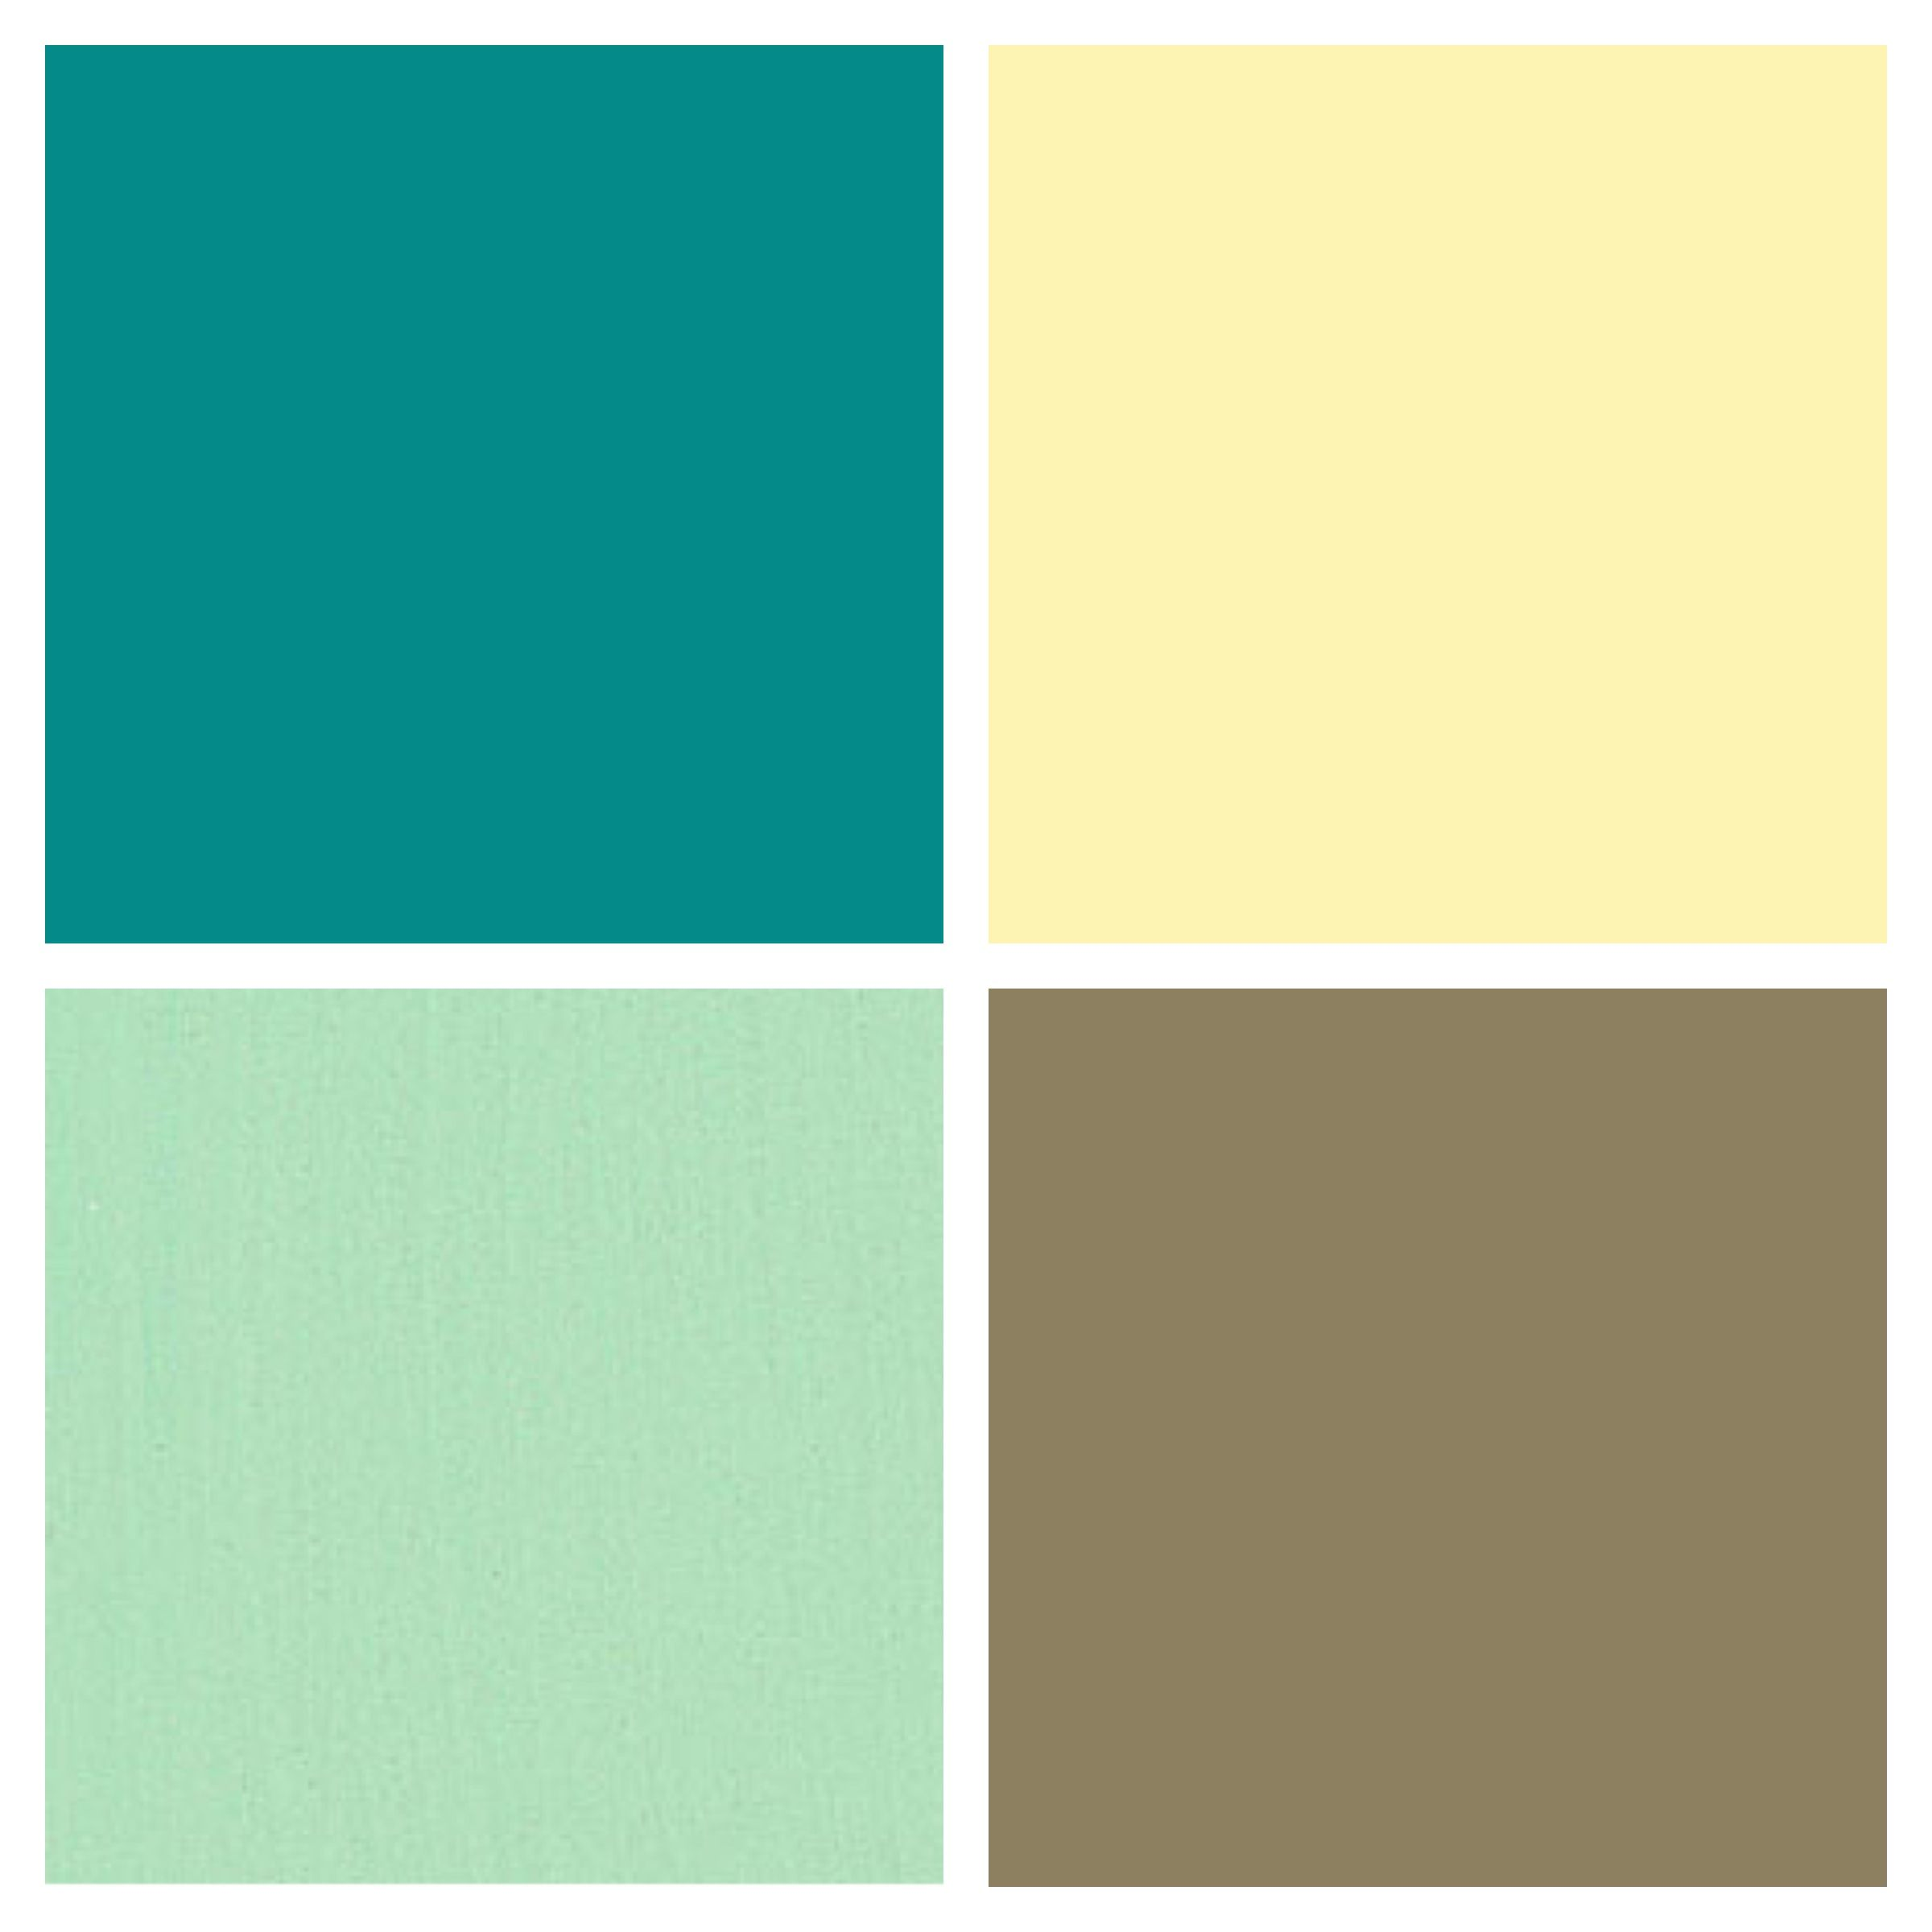 Design Yellow Color Schemes kitchen color palette butter country yellow mint seafoam green tan